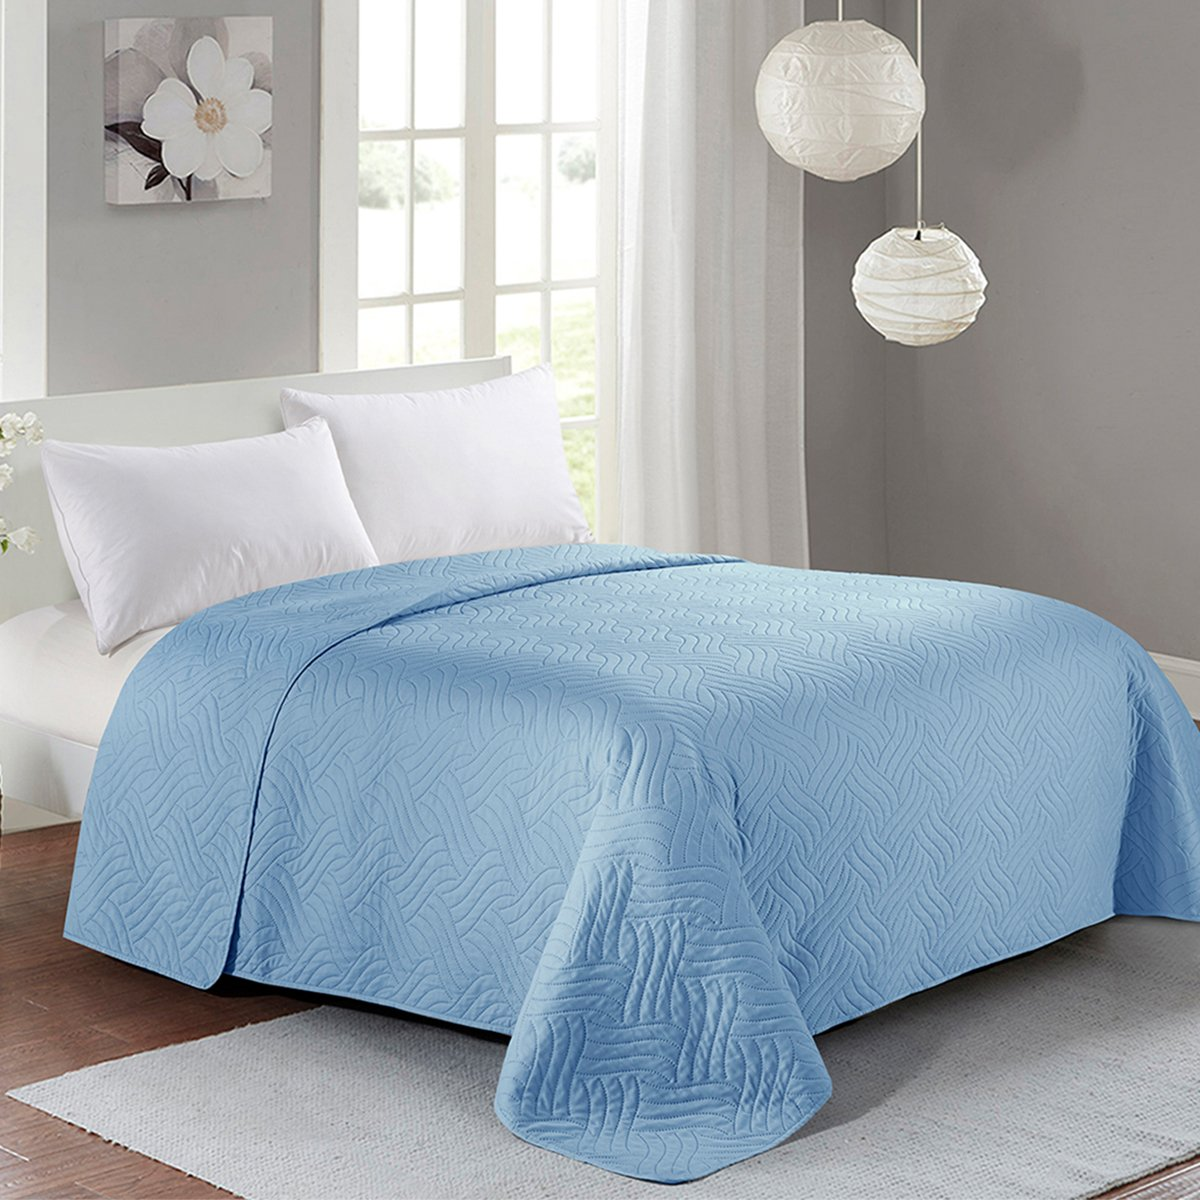 HollyHOME Luxury Super Soft Solid Single Pinsonic Quilted Bed Quilt Bedspread Bed Cover, Spa Blue, Full/Queen